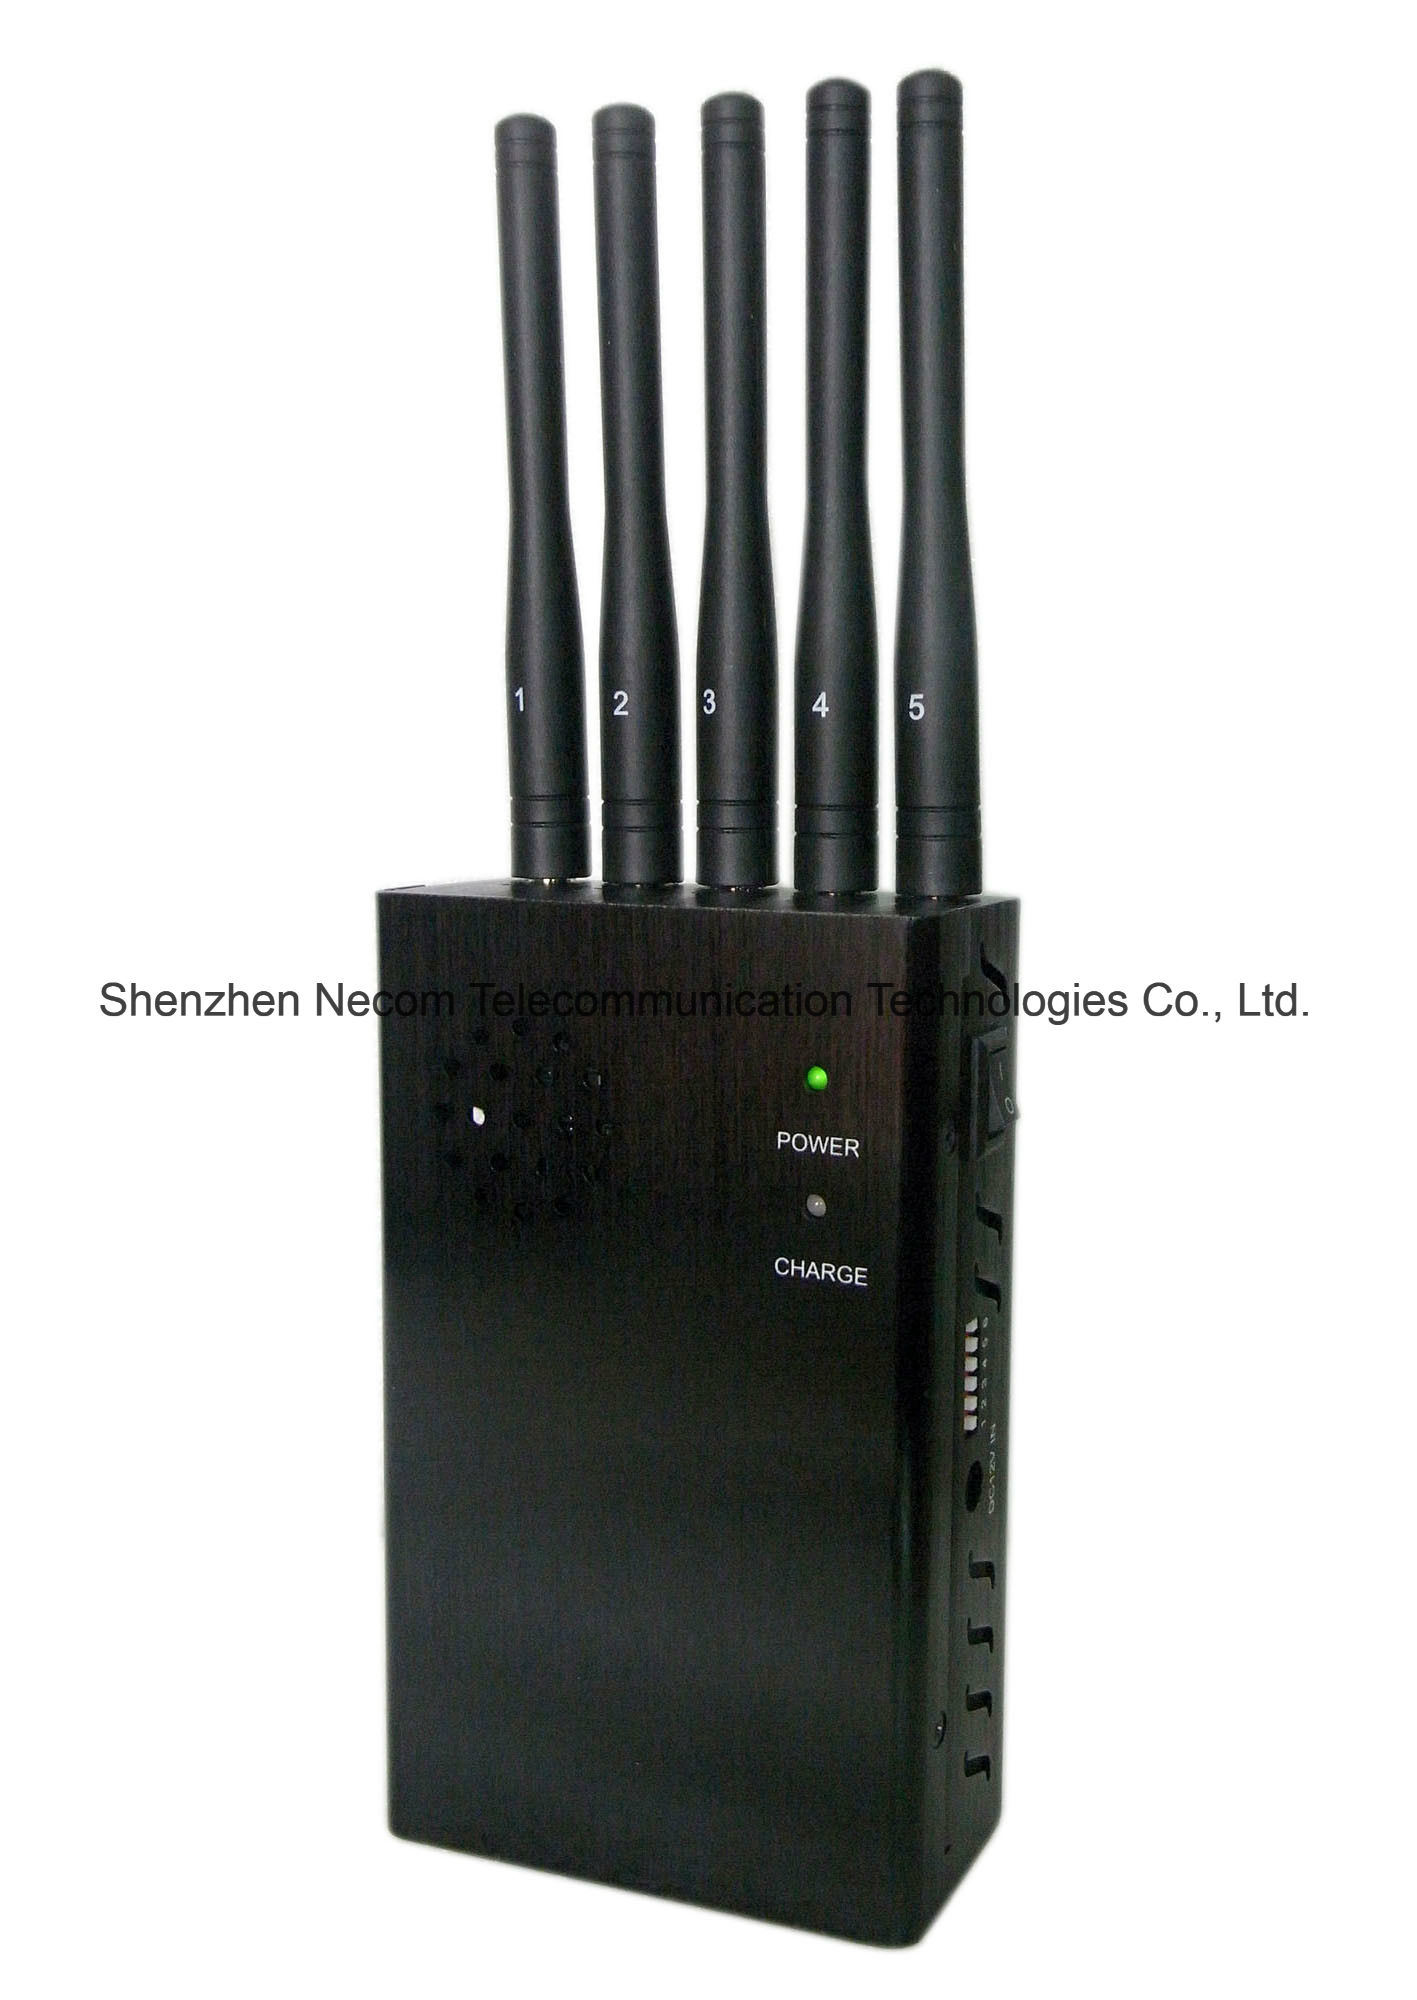 phone network jammer emp - China 5 Antenna Big Portable Cell Jammer, Portable GPS Jammer, Portable WiFi Jammer, Jamming 2g+3G+4G+Gpsl1 - China 5 Band Signal Blockers, Five Antennas Jammers